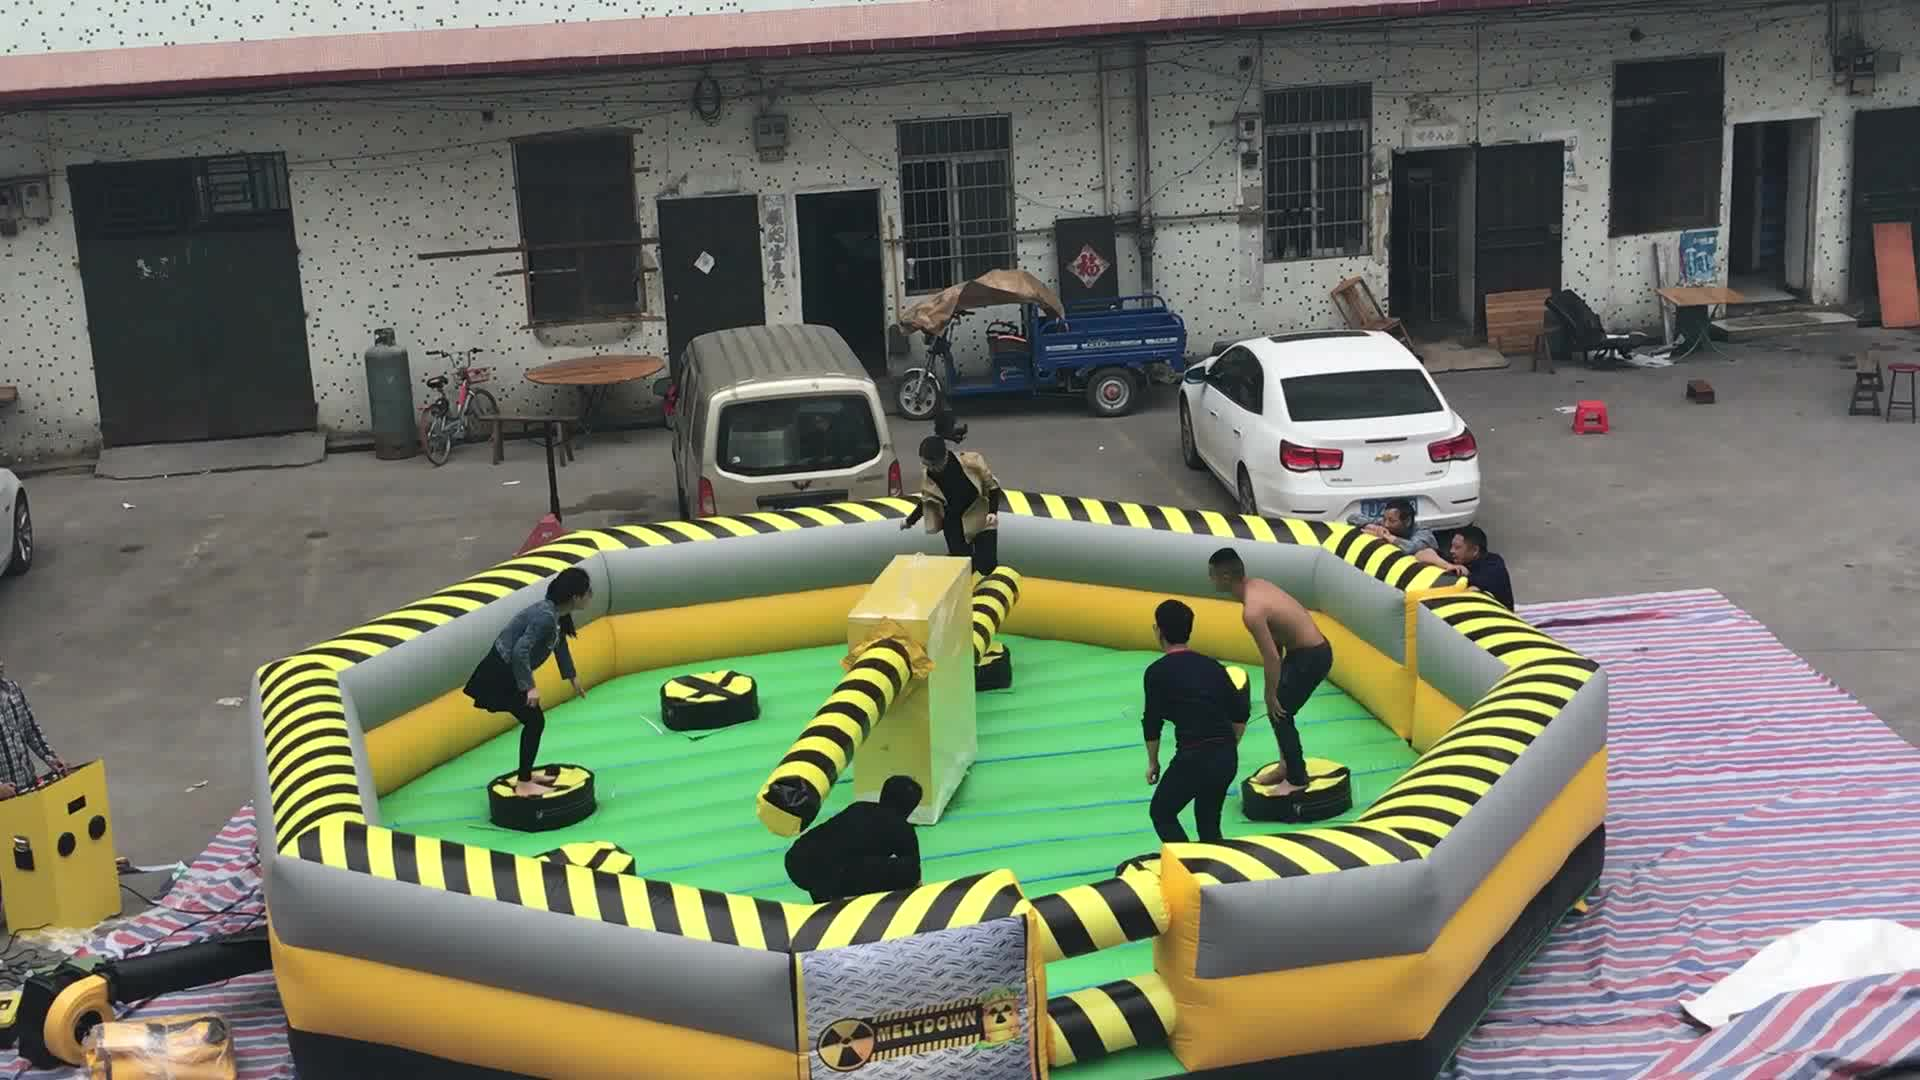 hot game inflatable meltdown/ inflatable wipeout for sale /inflatable wipeout course